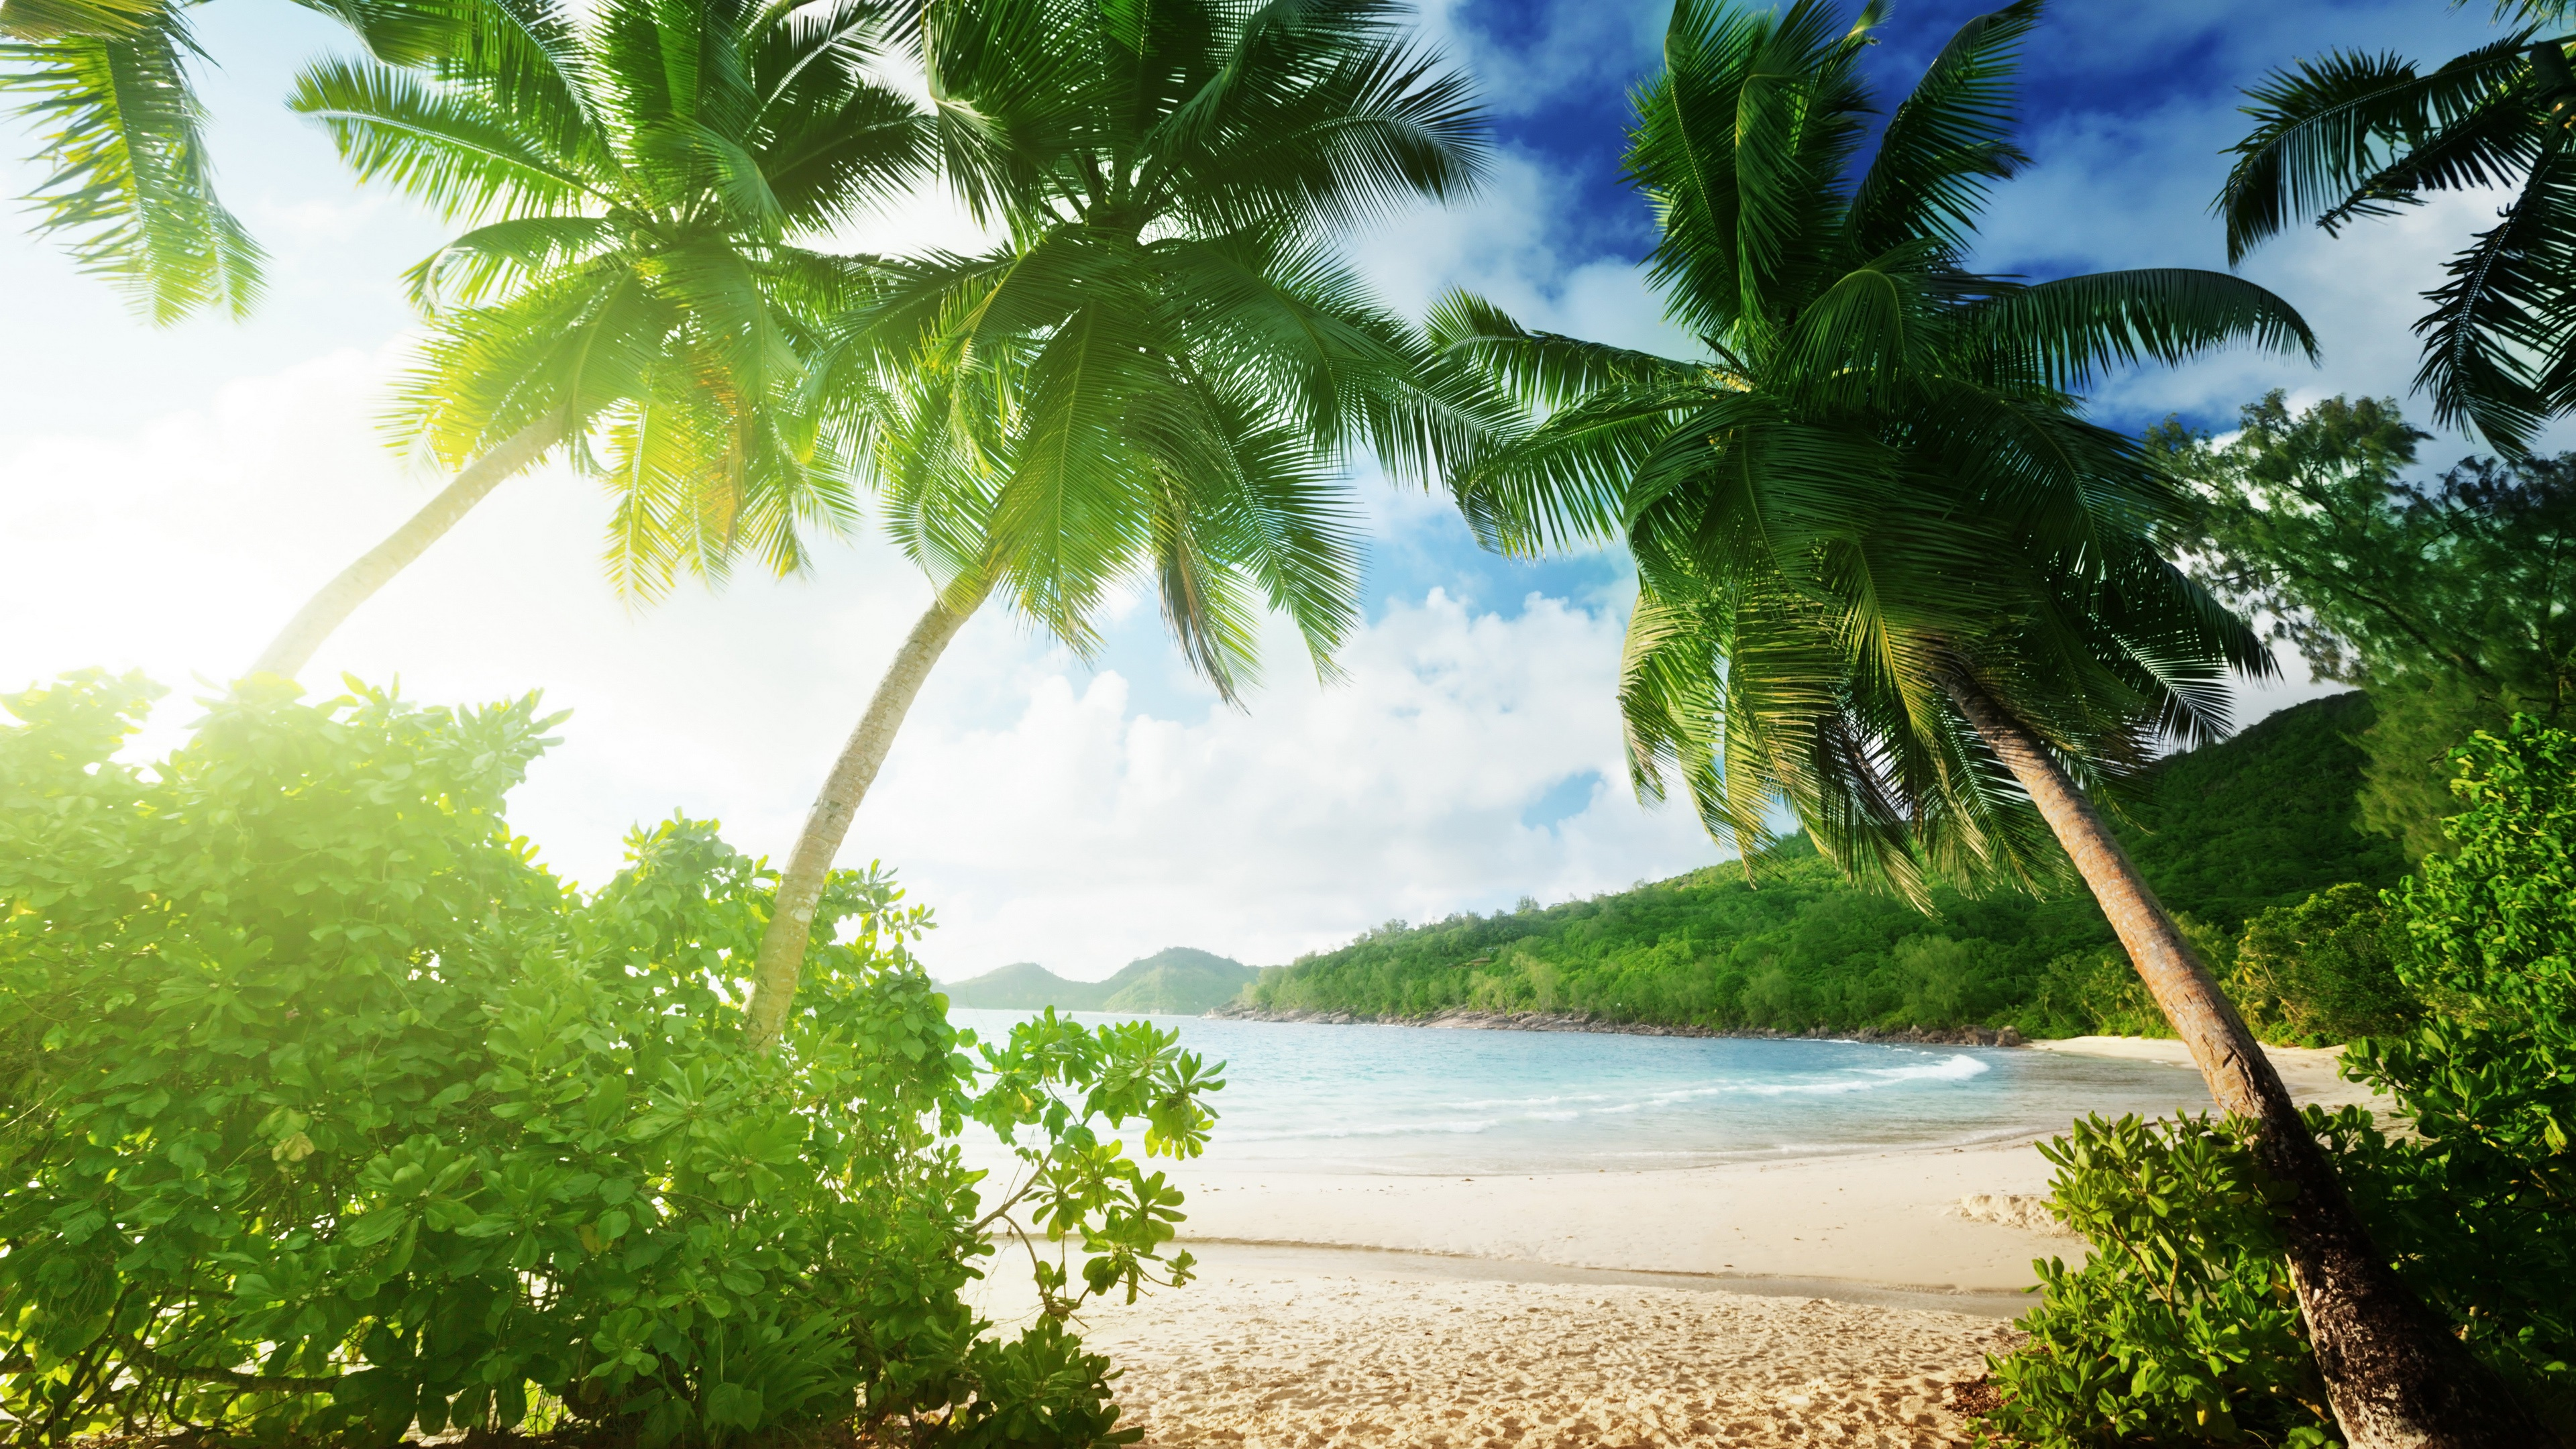 10 Most Popular Beautiful Beach Backgrounds Palm Trees: Wallpaper Tropical Beach, Palm Trees, Sand, Sea, Coast